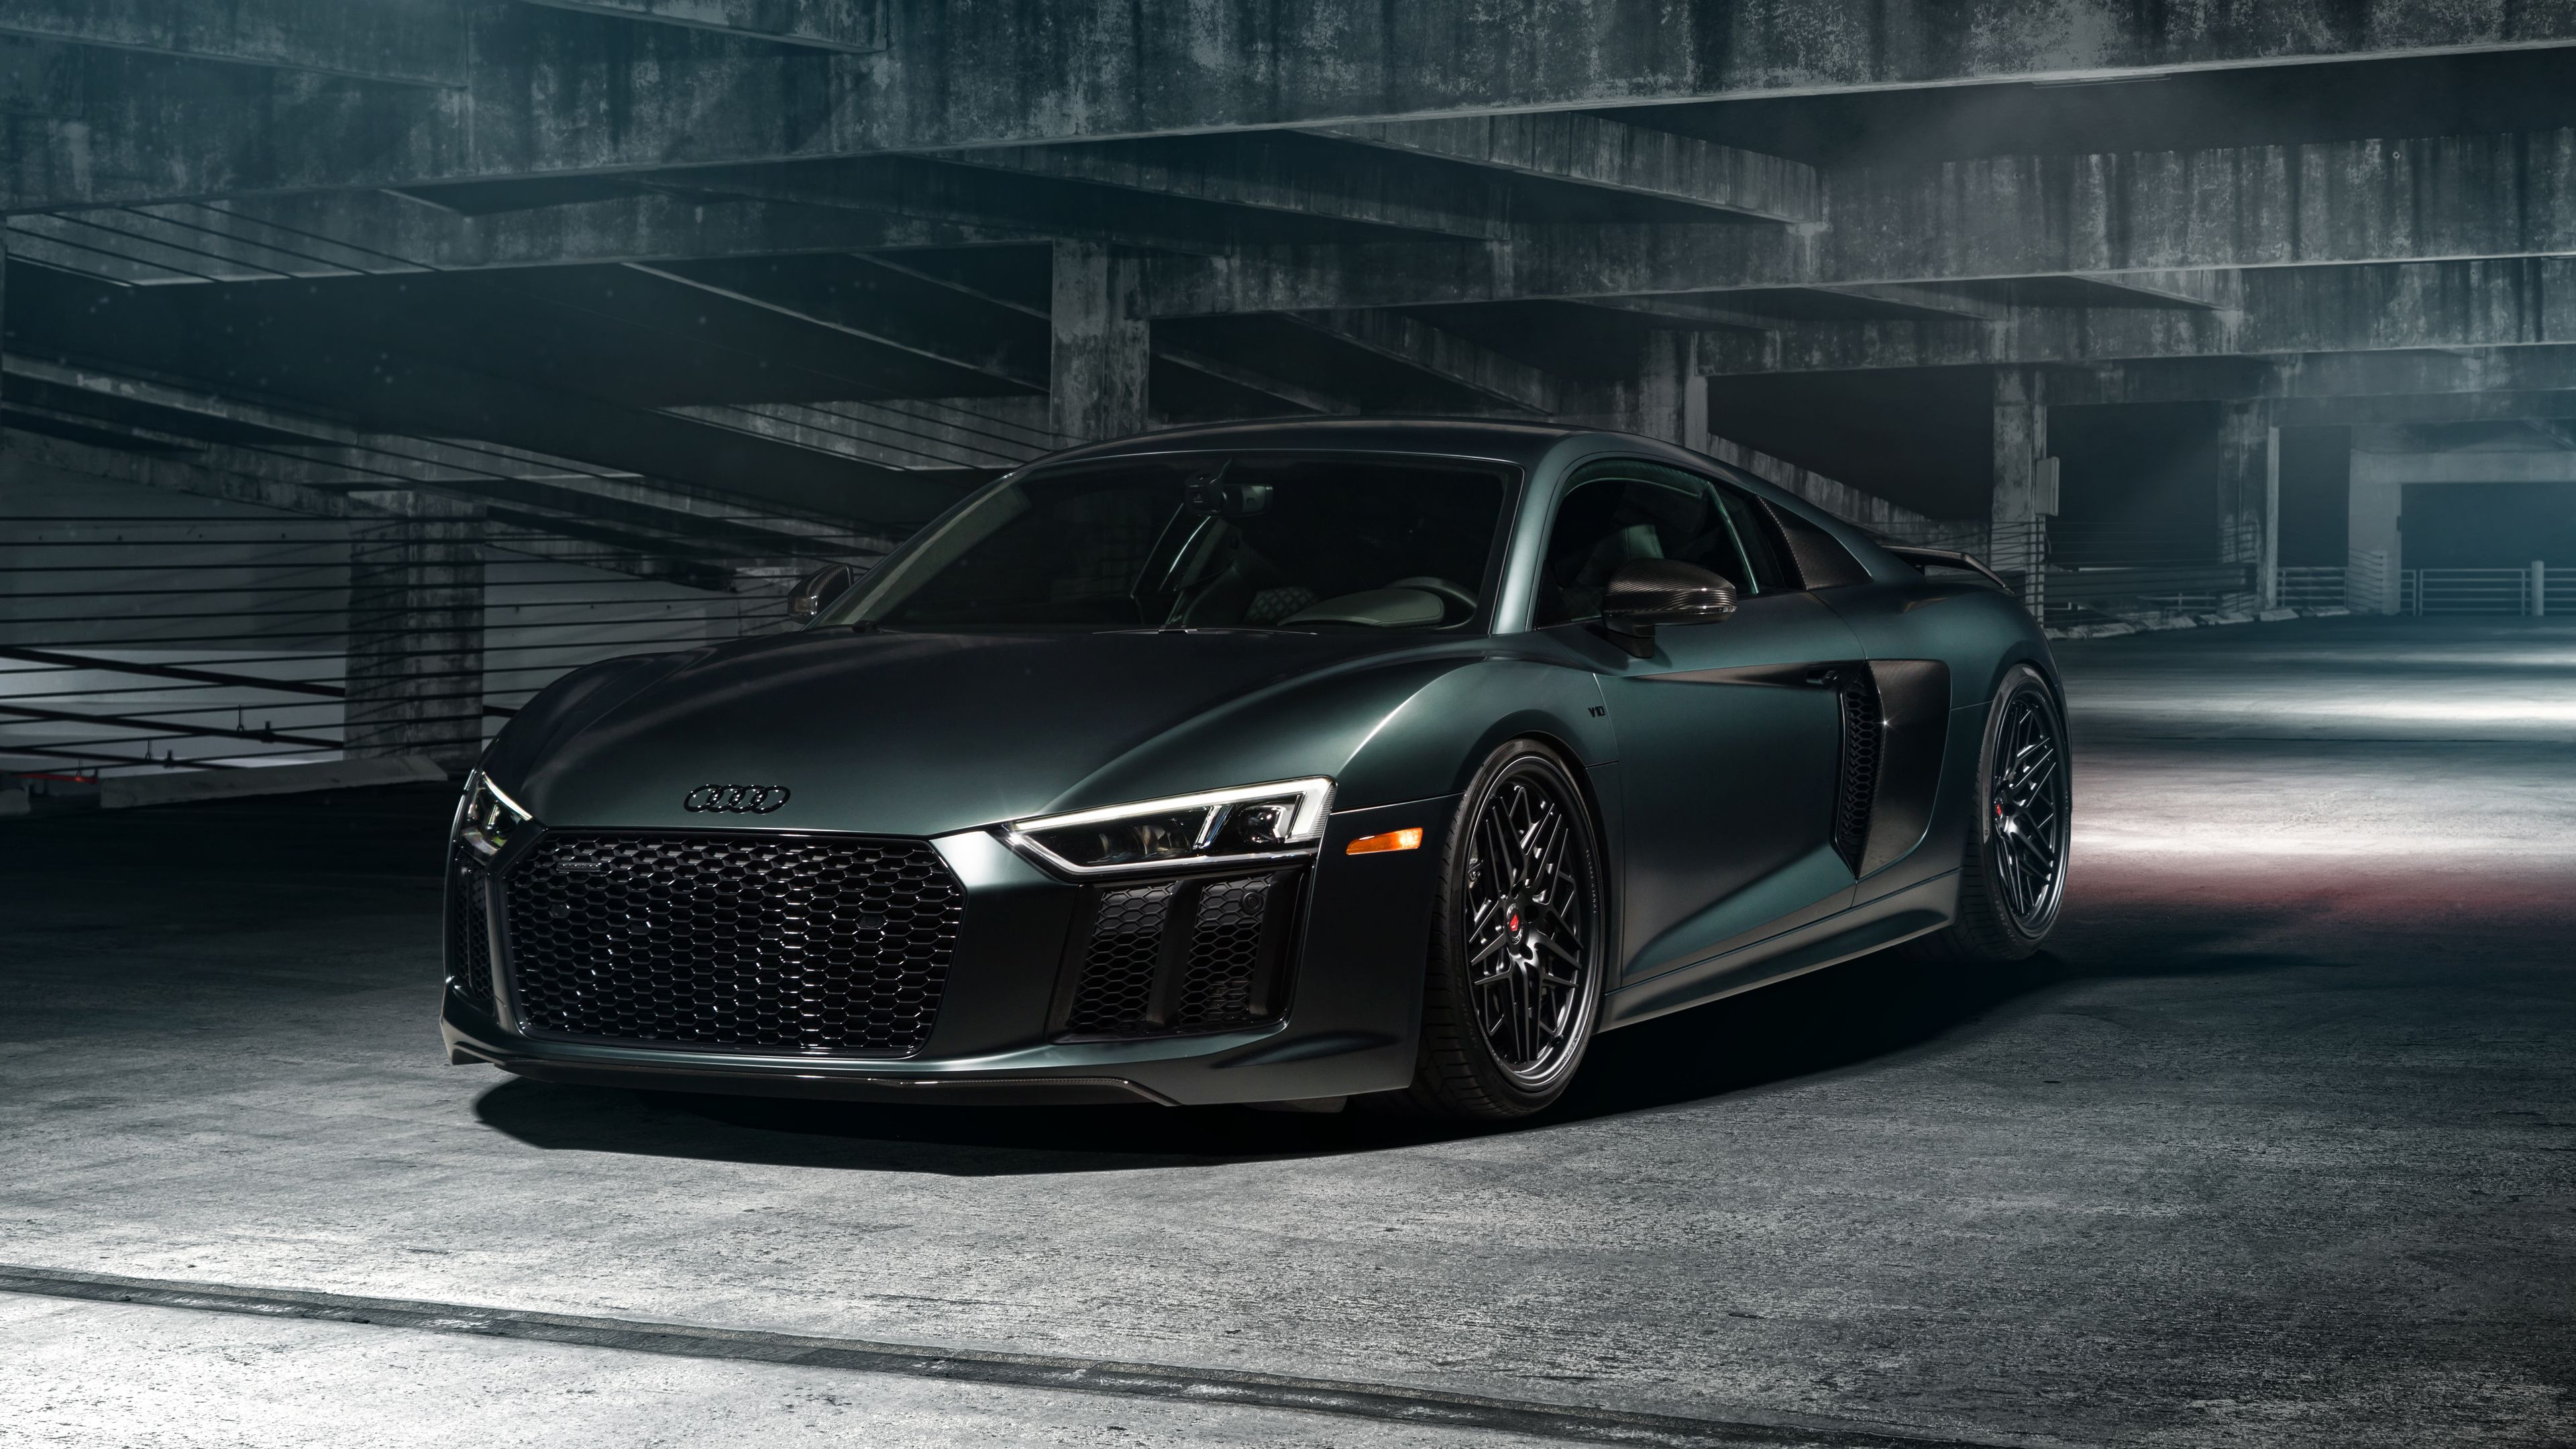 Learn more about the lamborghini line, including specs and photos. 2017 Audi R8 V10 4k 5k Hd Wallpapers Cars Wallpapers Audi Wallpapers Audi R8 Wallpapers 5k Wa Audi R8 Wallpaper Best Luxury Sports Car Sports Car Wallpaper